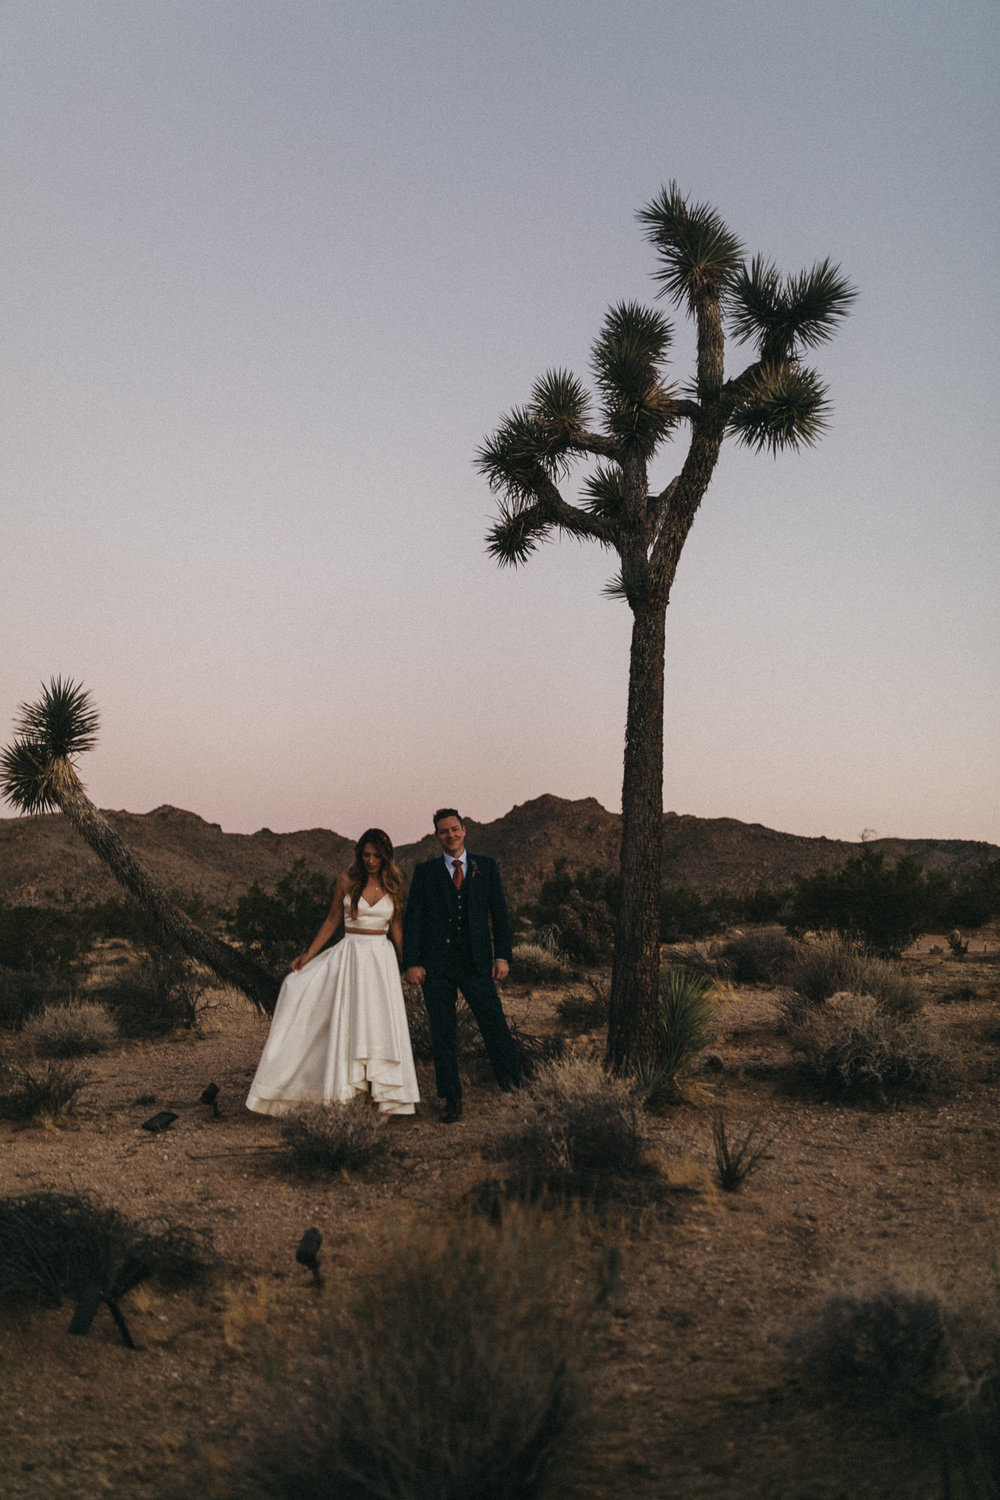 sacred_sands_joshua_tree_wedding-73.jpg